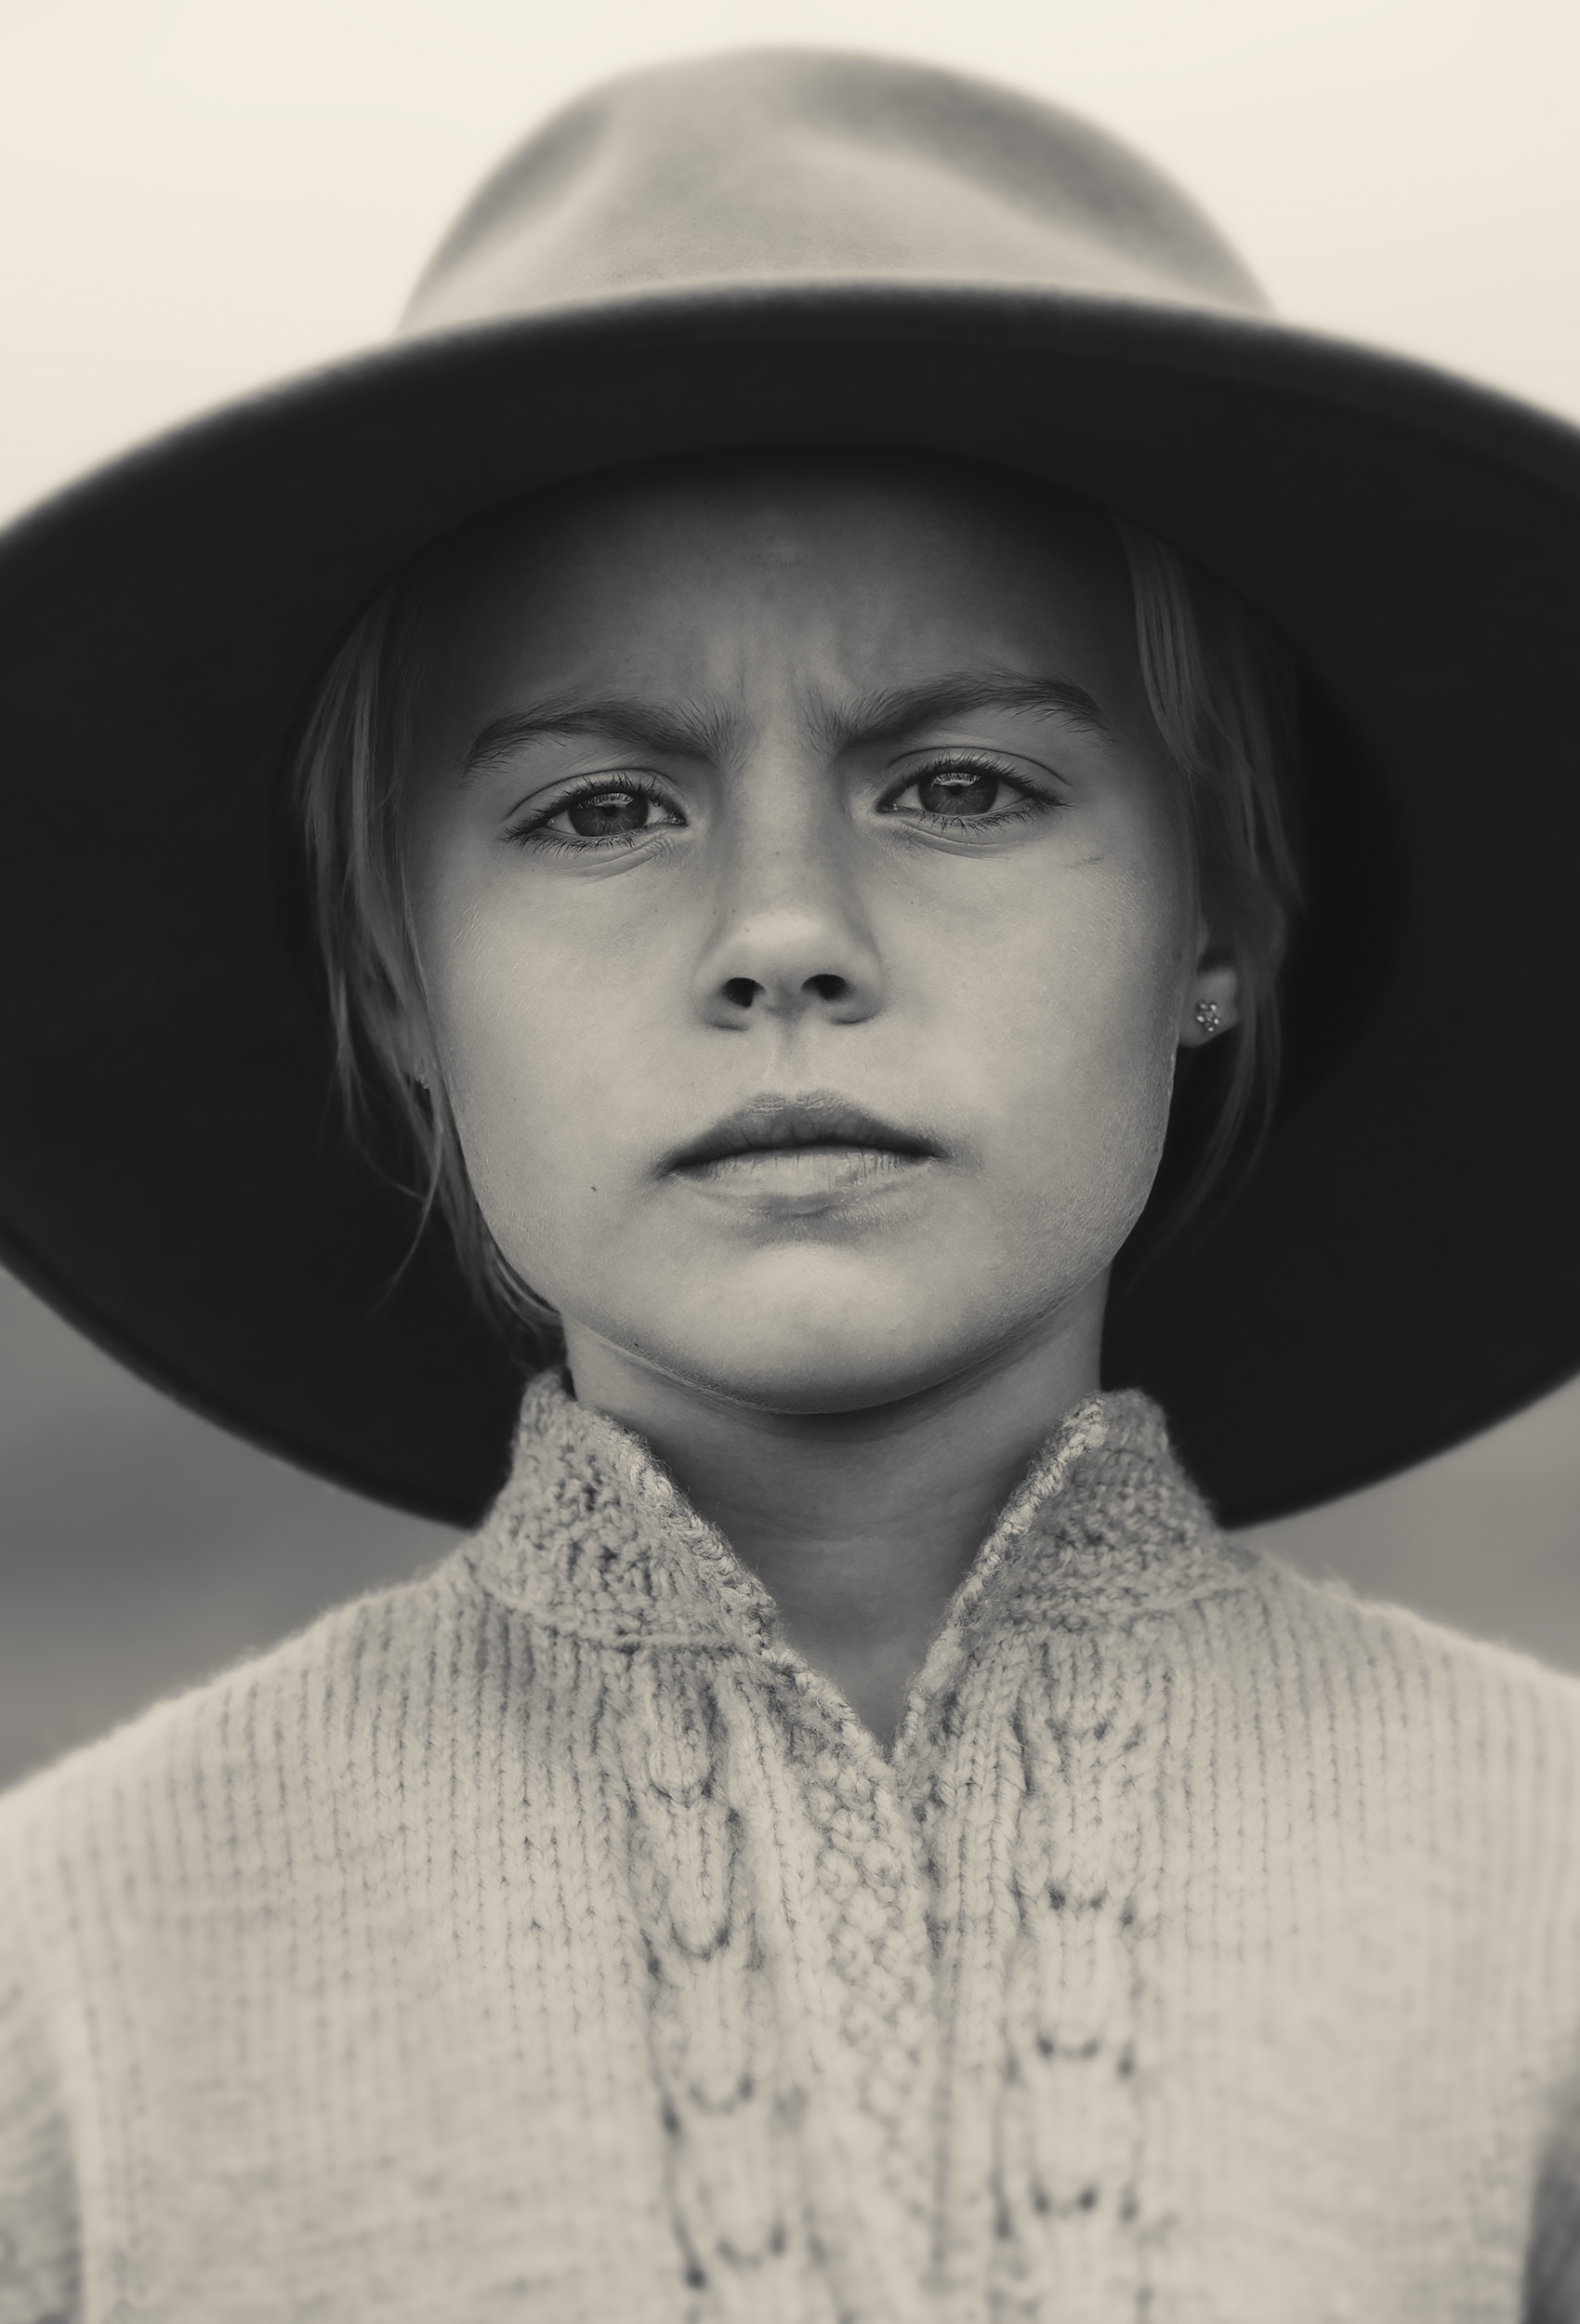 Young cowgirl wearing a cowboy hat looking at camera